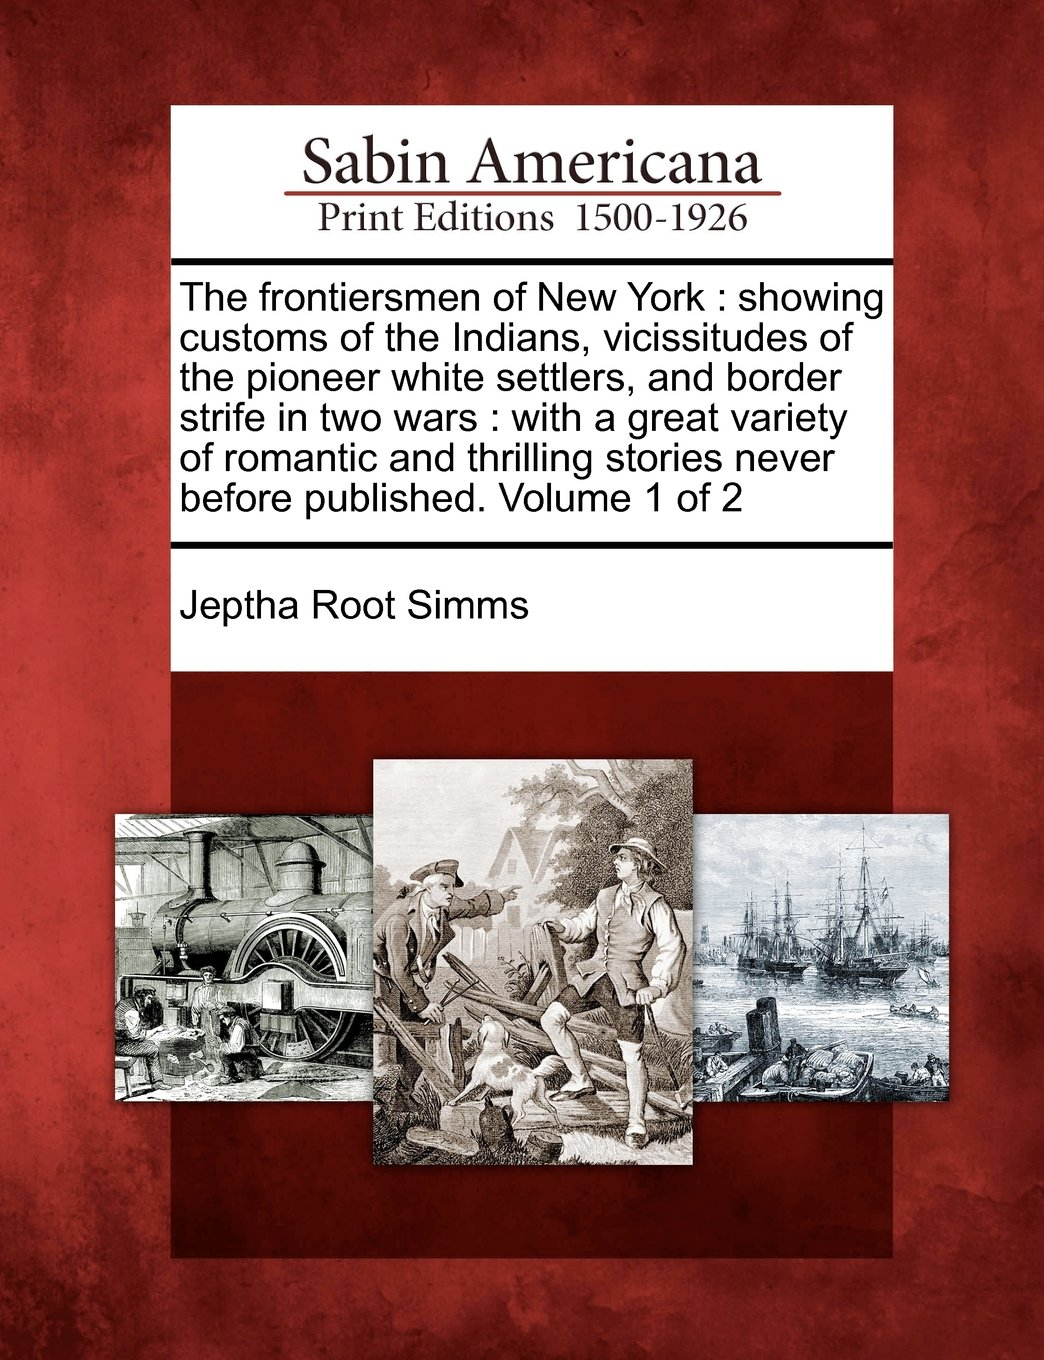 Download The frontiersmen of New York: showing customs of the Indians, vicissitudes of the pioneer white settlers, and border strife in two wars : with a great ... stories never before published. Volume 1 of 2 pdf epub